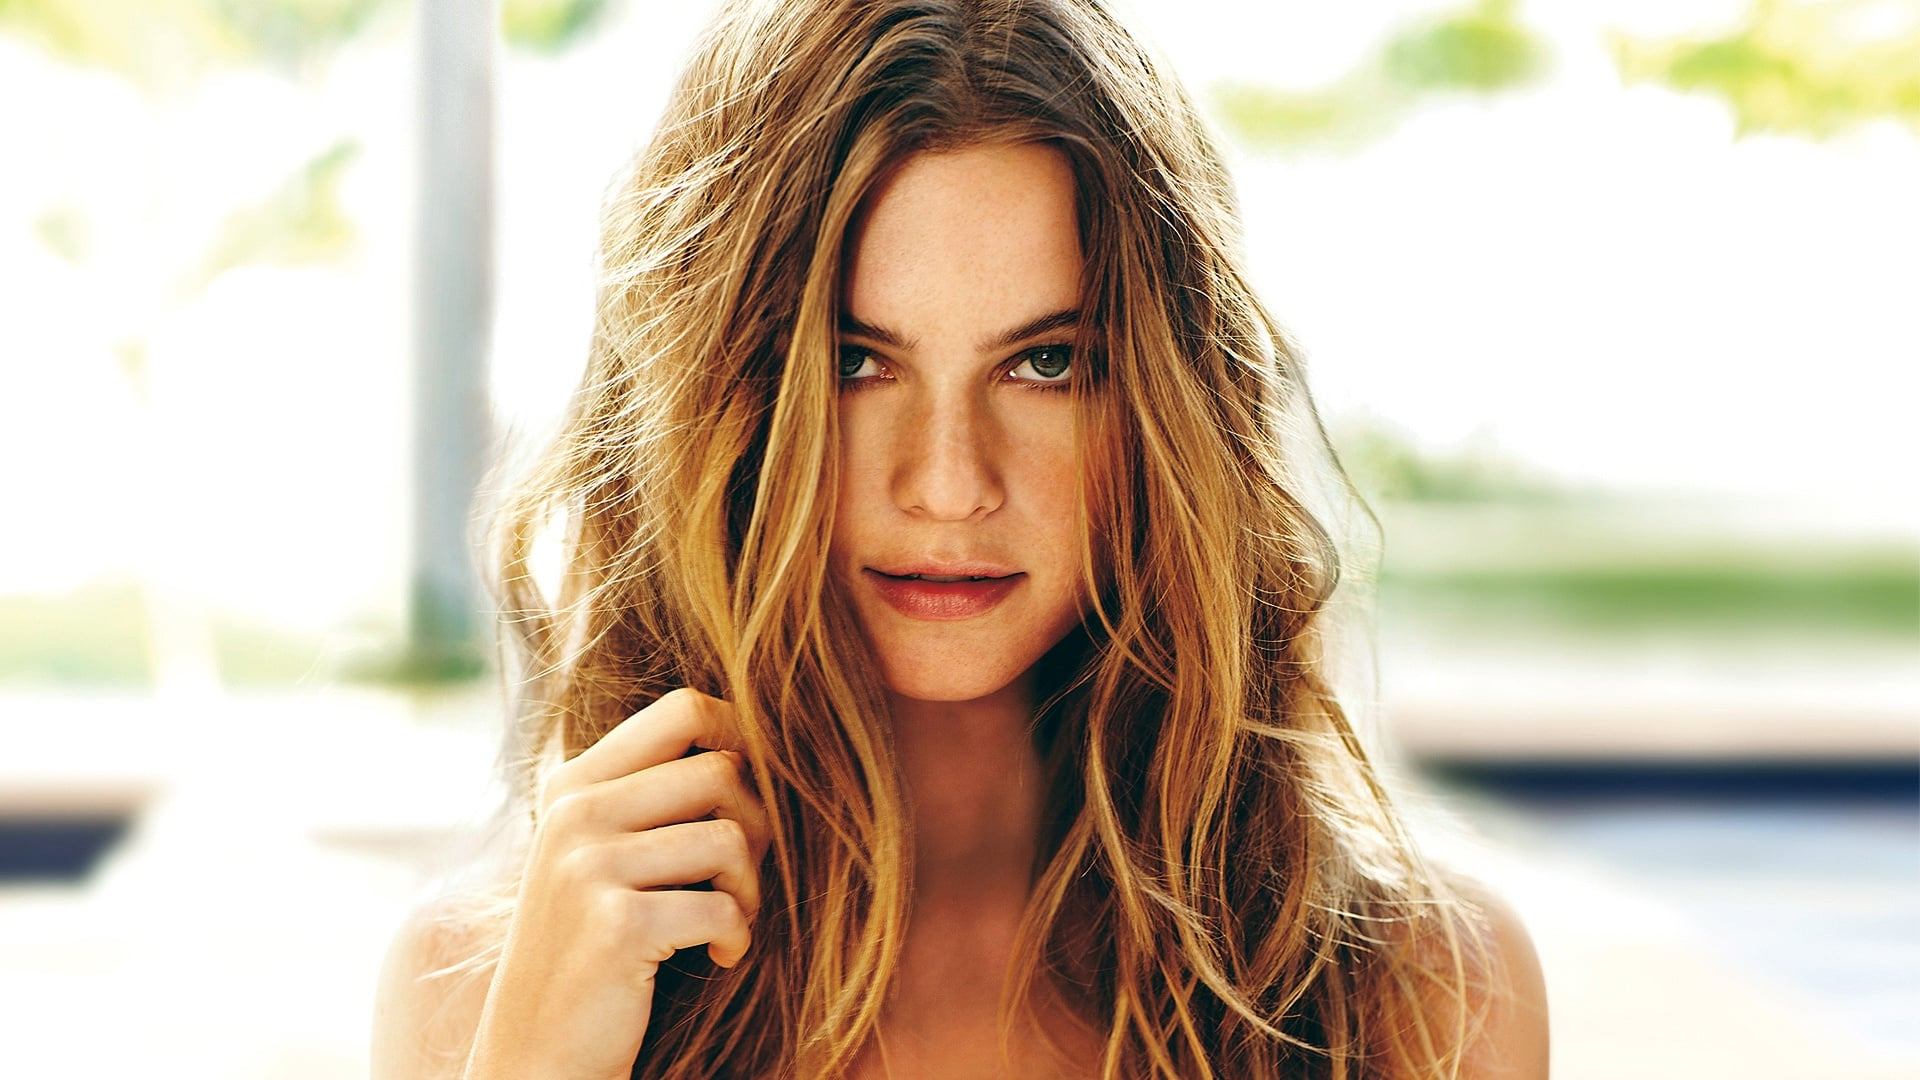 hair Behati Prinsloo widescreen wallpaper